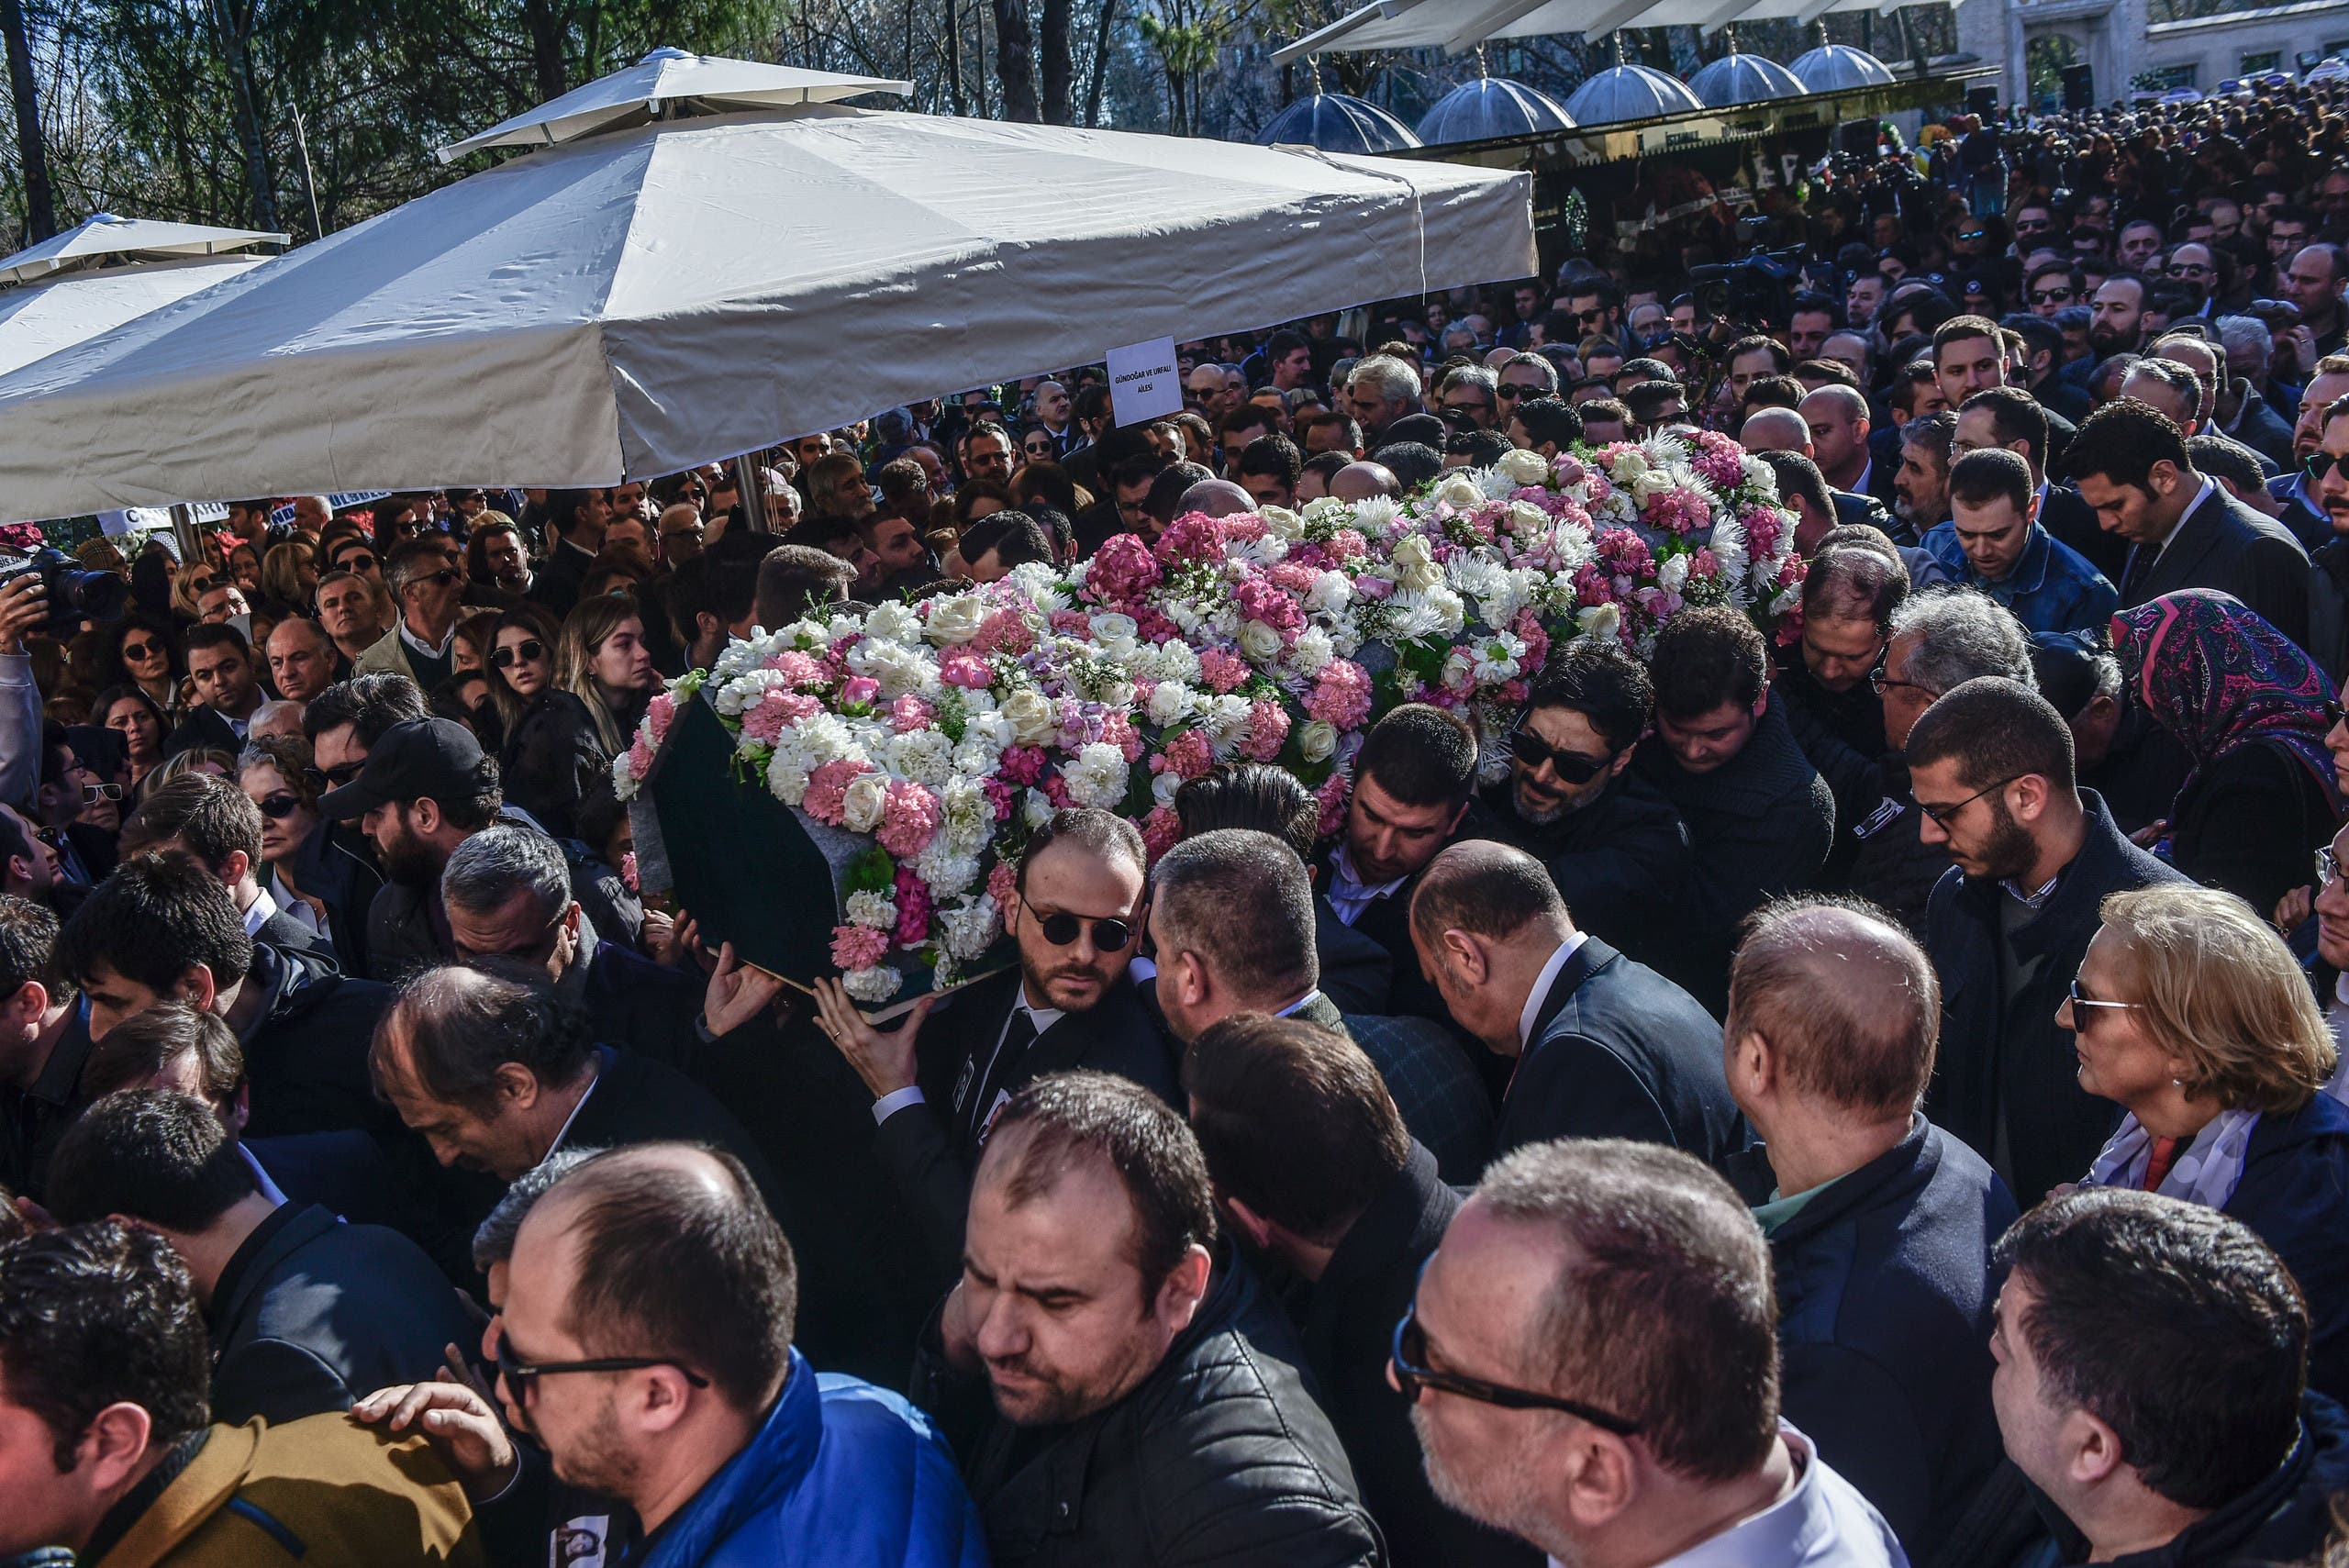 Relatives carry the coffin of Mina Basaran, one of the victims of a plane crash over Iran, during the funeral ceremony in Istanbul on March 15, 2018. Grieving families bade farewell to the young women killed in a plane crash over Iran while returning from a pre-wedding celebration for a Turkish businessman's daughter, in a tragedy that shocked the country.